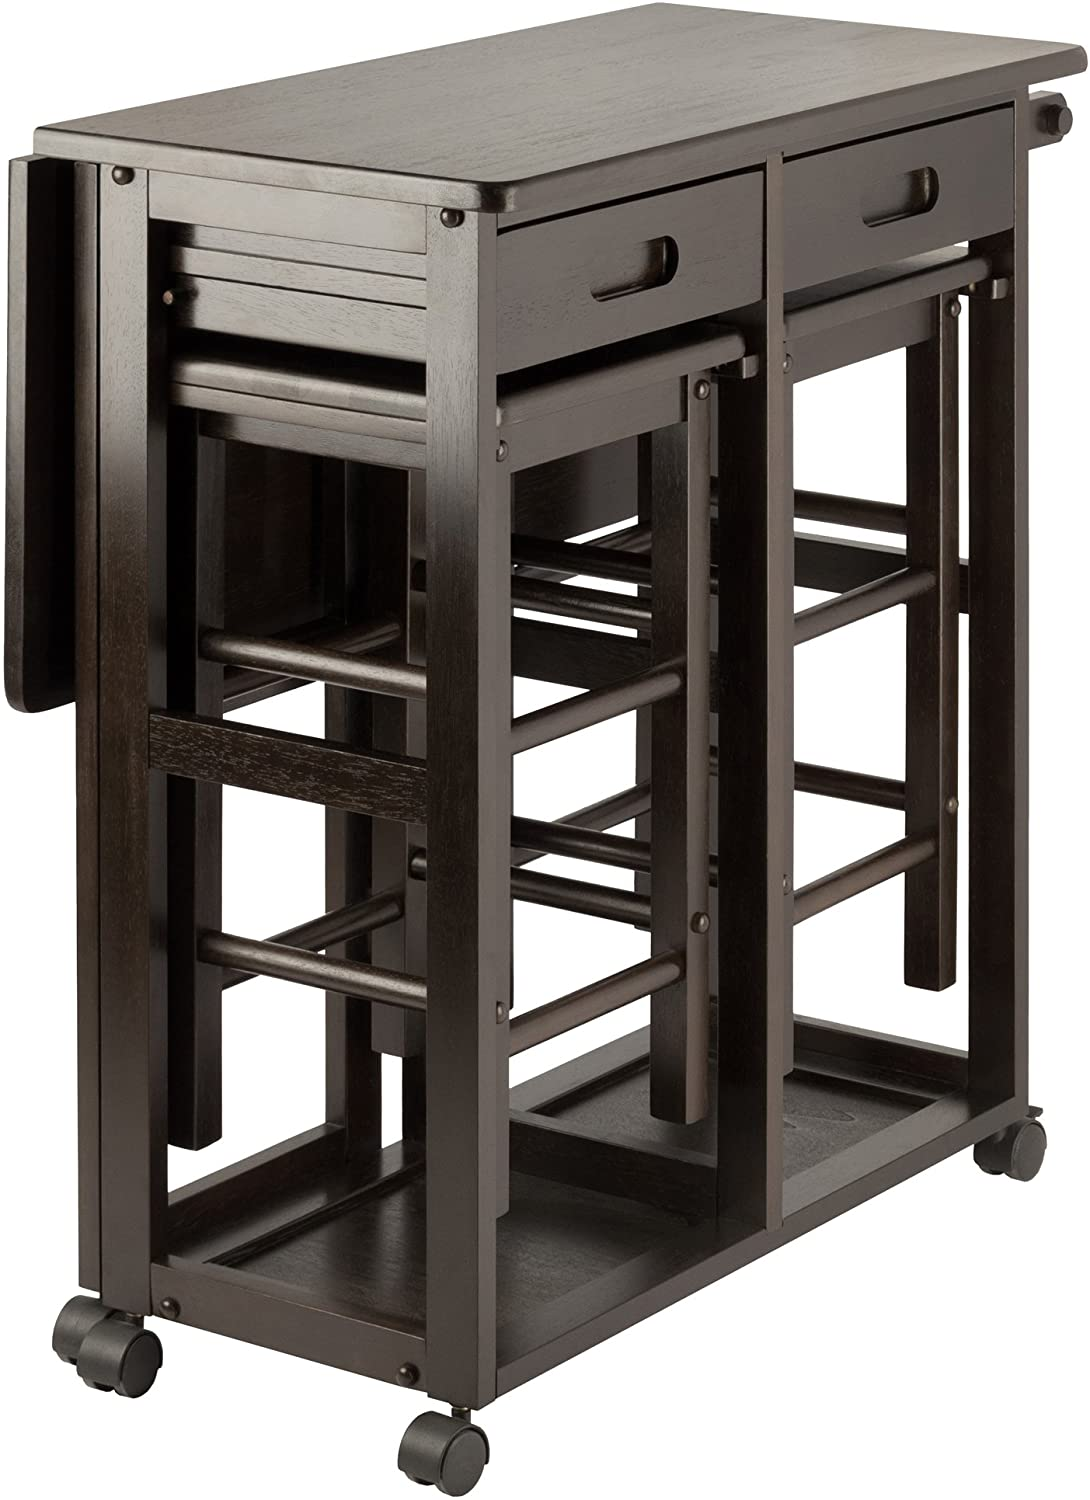 Winsome Suzanne Space Saver Kitchen Coffee Finish